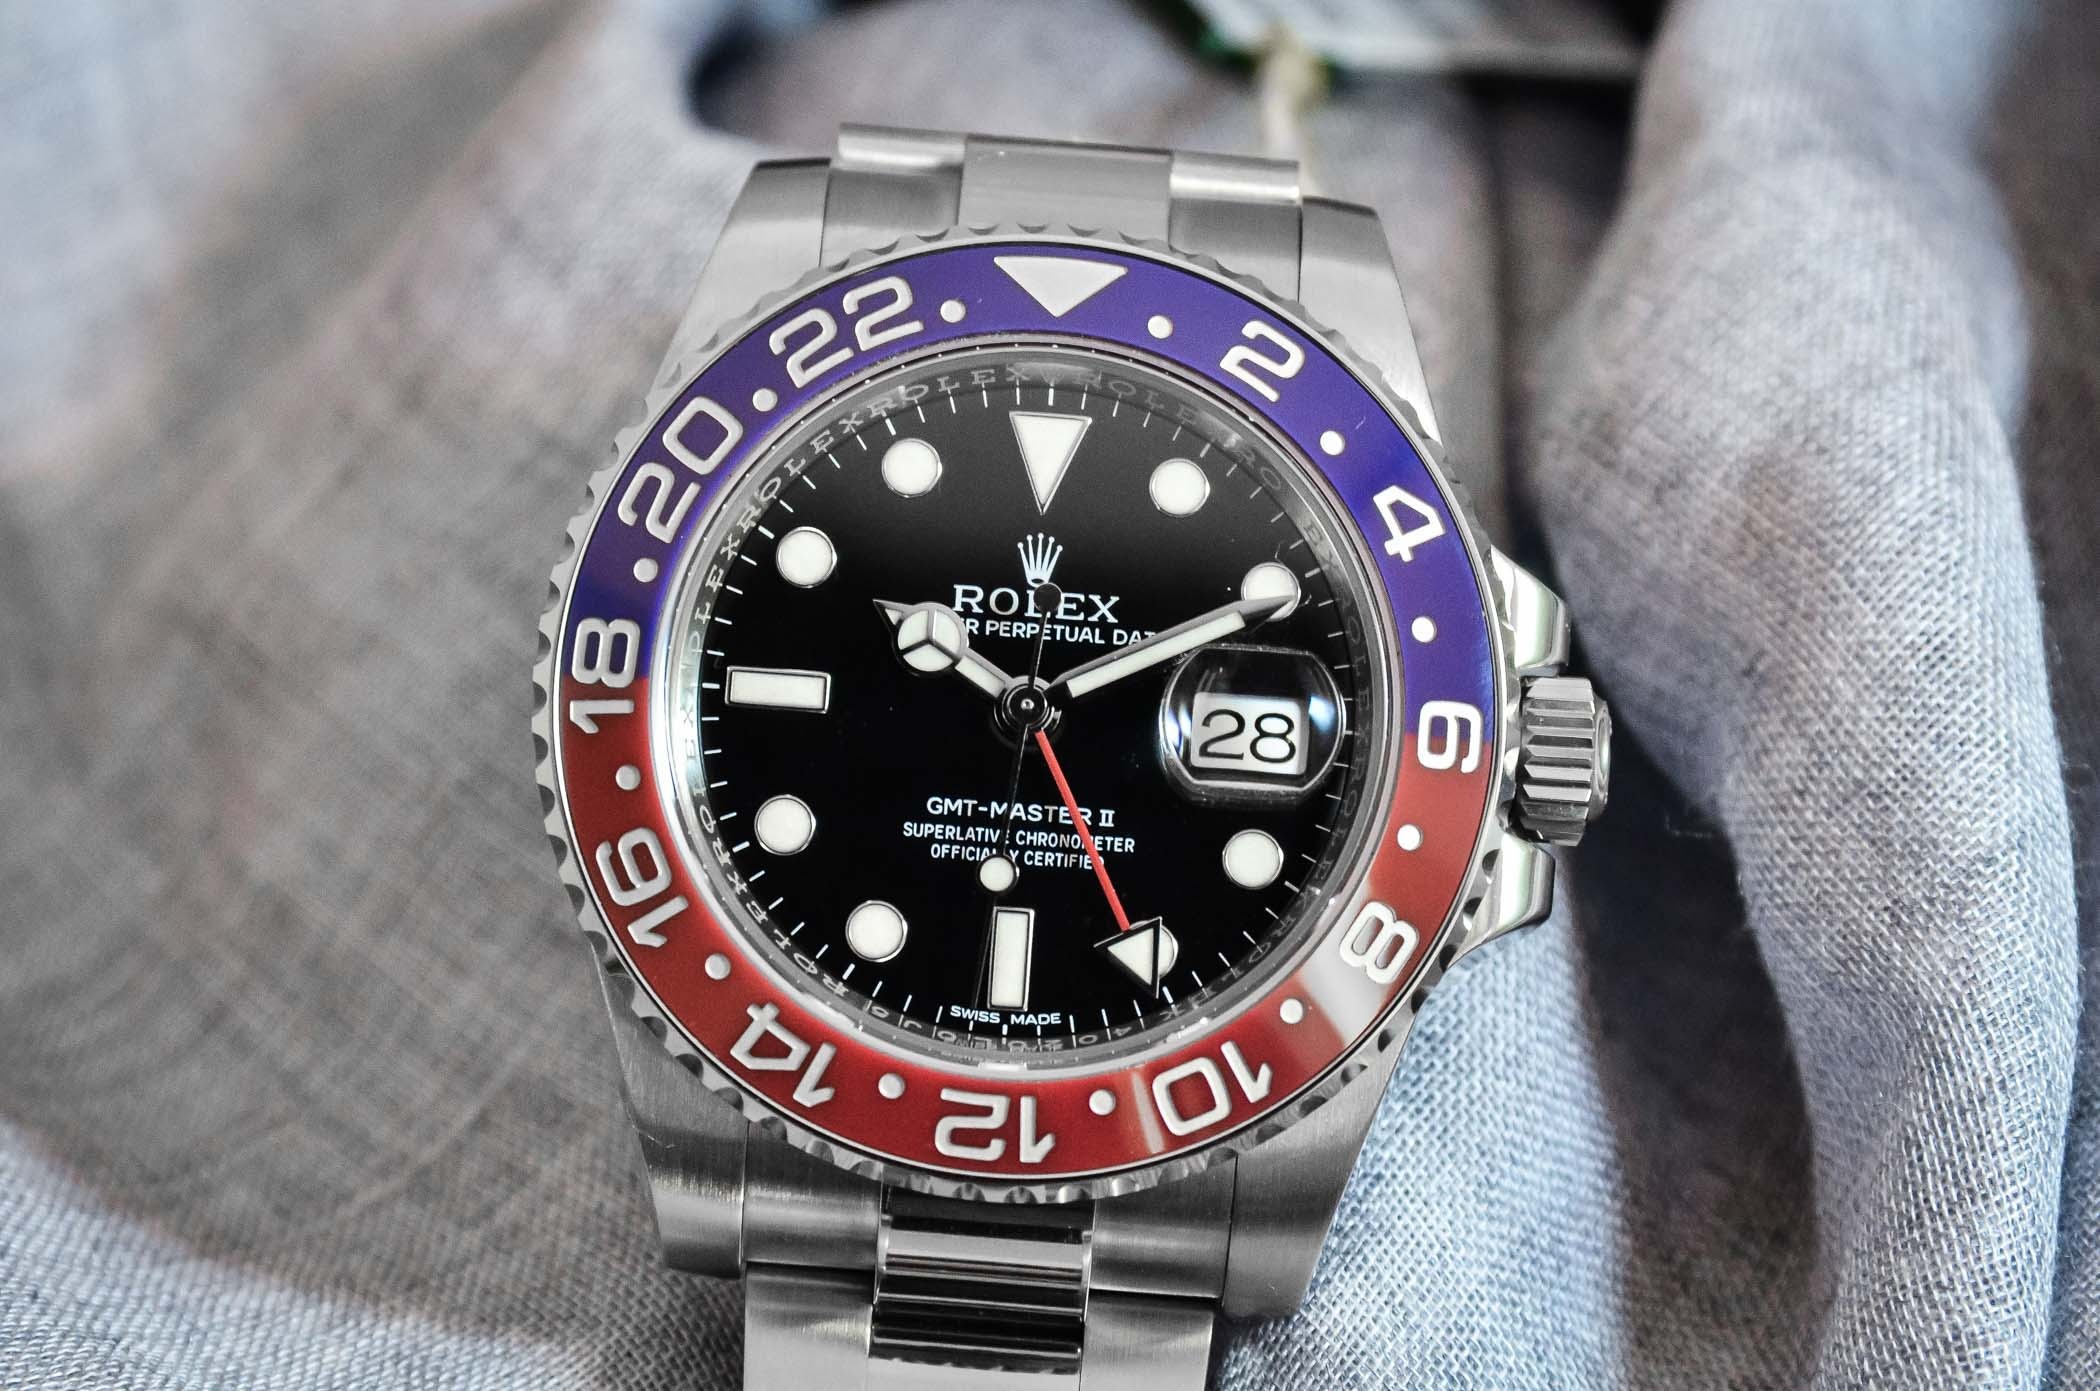 Introducing the rolex gmt master ii pepsi ref 116719blro monochrome watches for Rolex gmt master